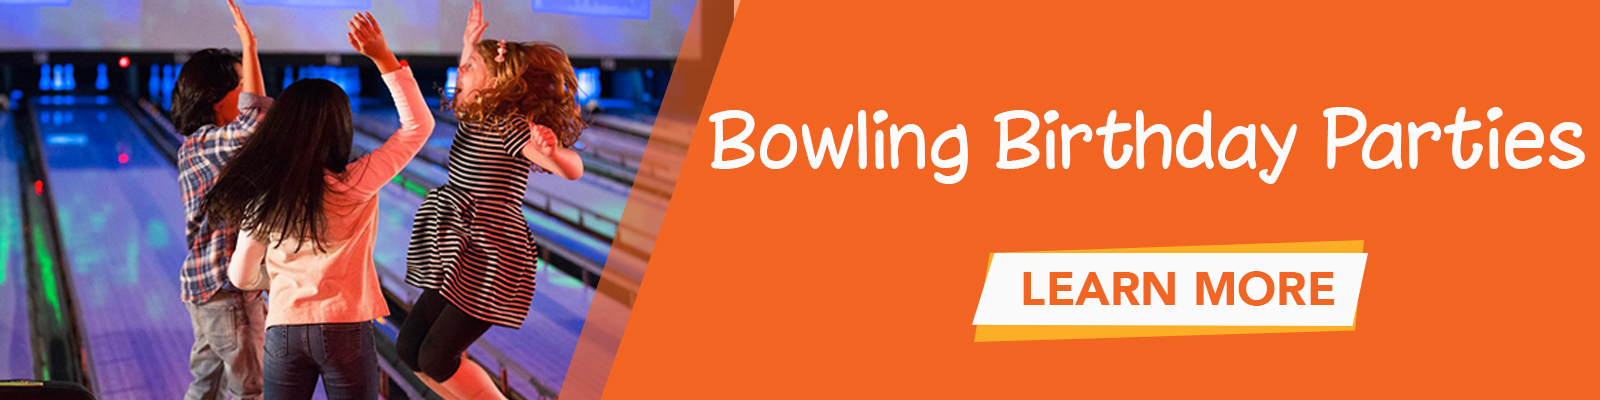 Click to learn more about bowling birthday parties